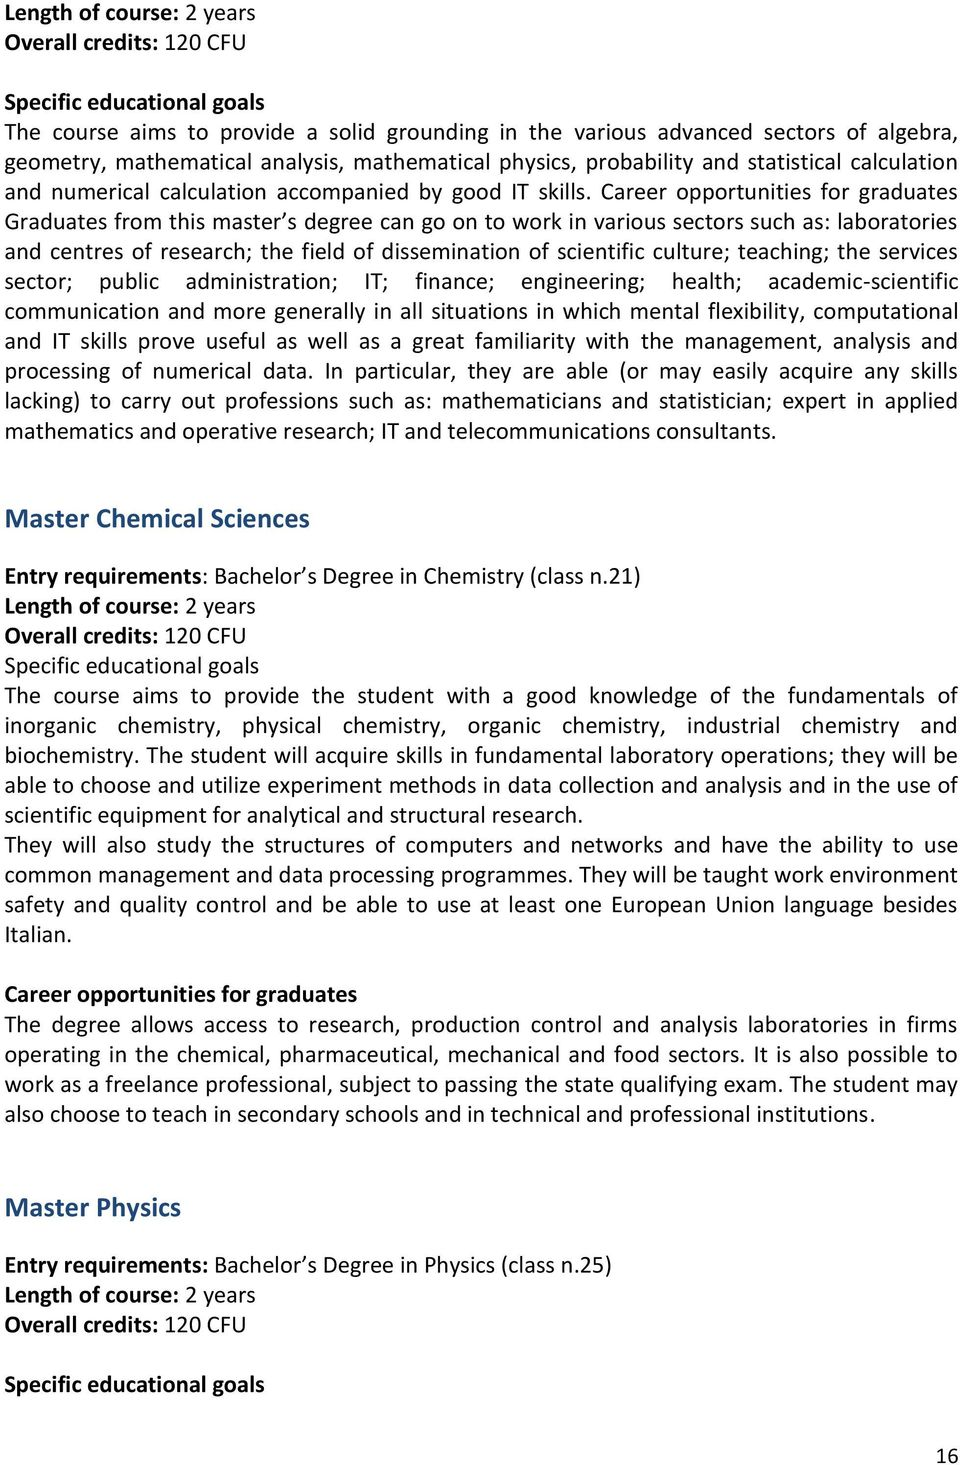 Career opportunities for graduates Graduates from this master s degree can go on to work in various sectors such as: laboratories and centres of research; the field of dissemination of scientific